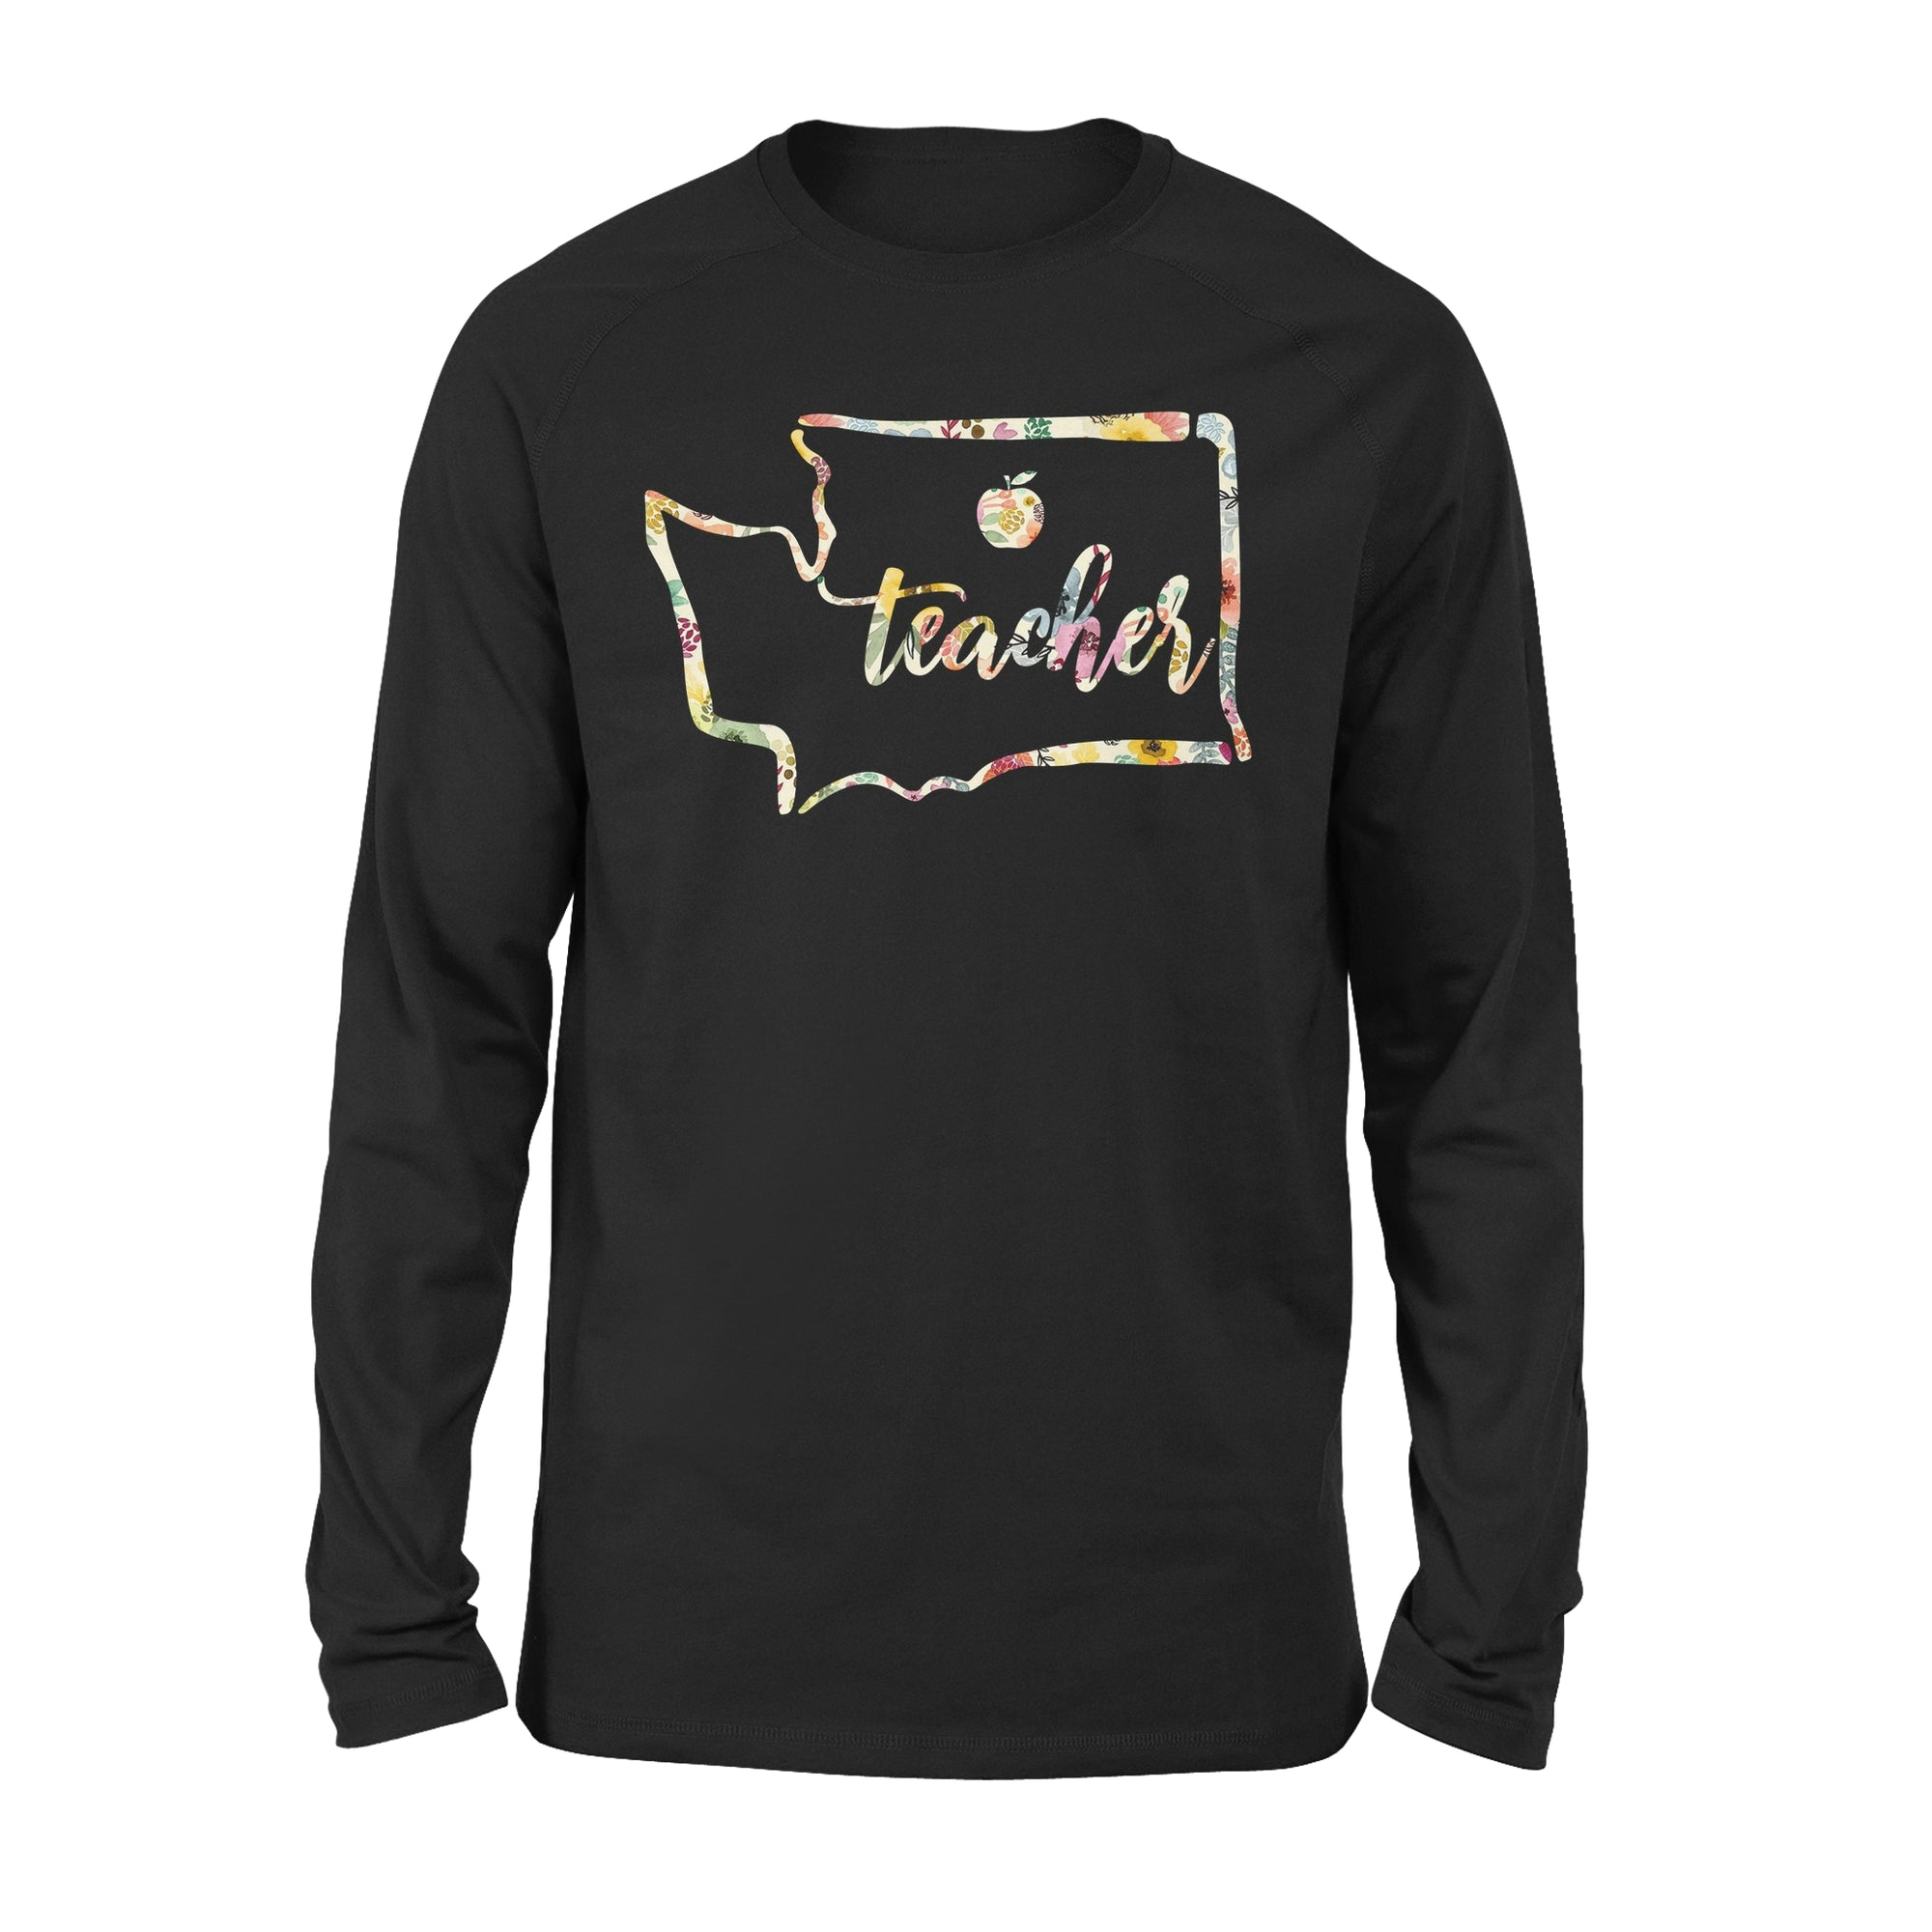 VIRAwashington state map Premium Long Sleeve for awesome teachers